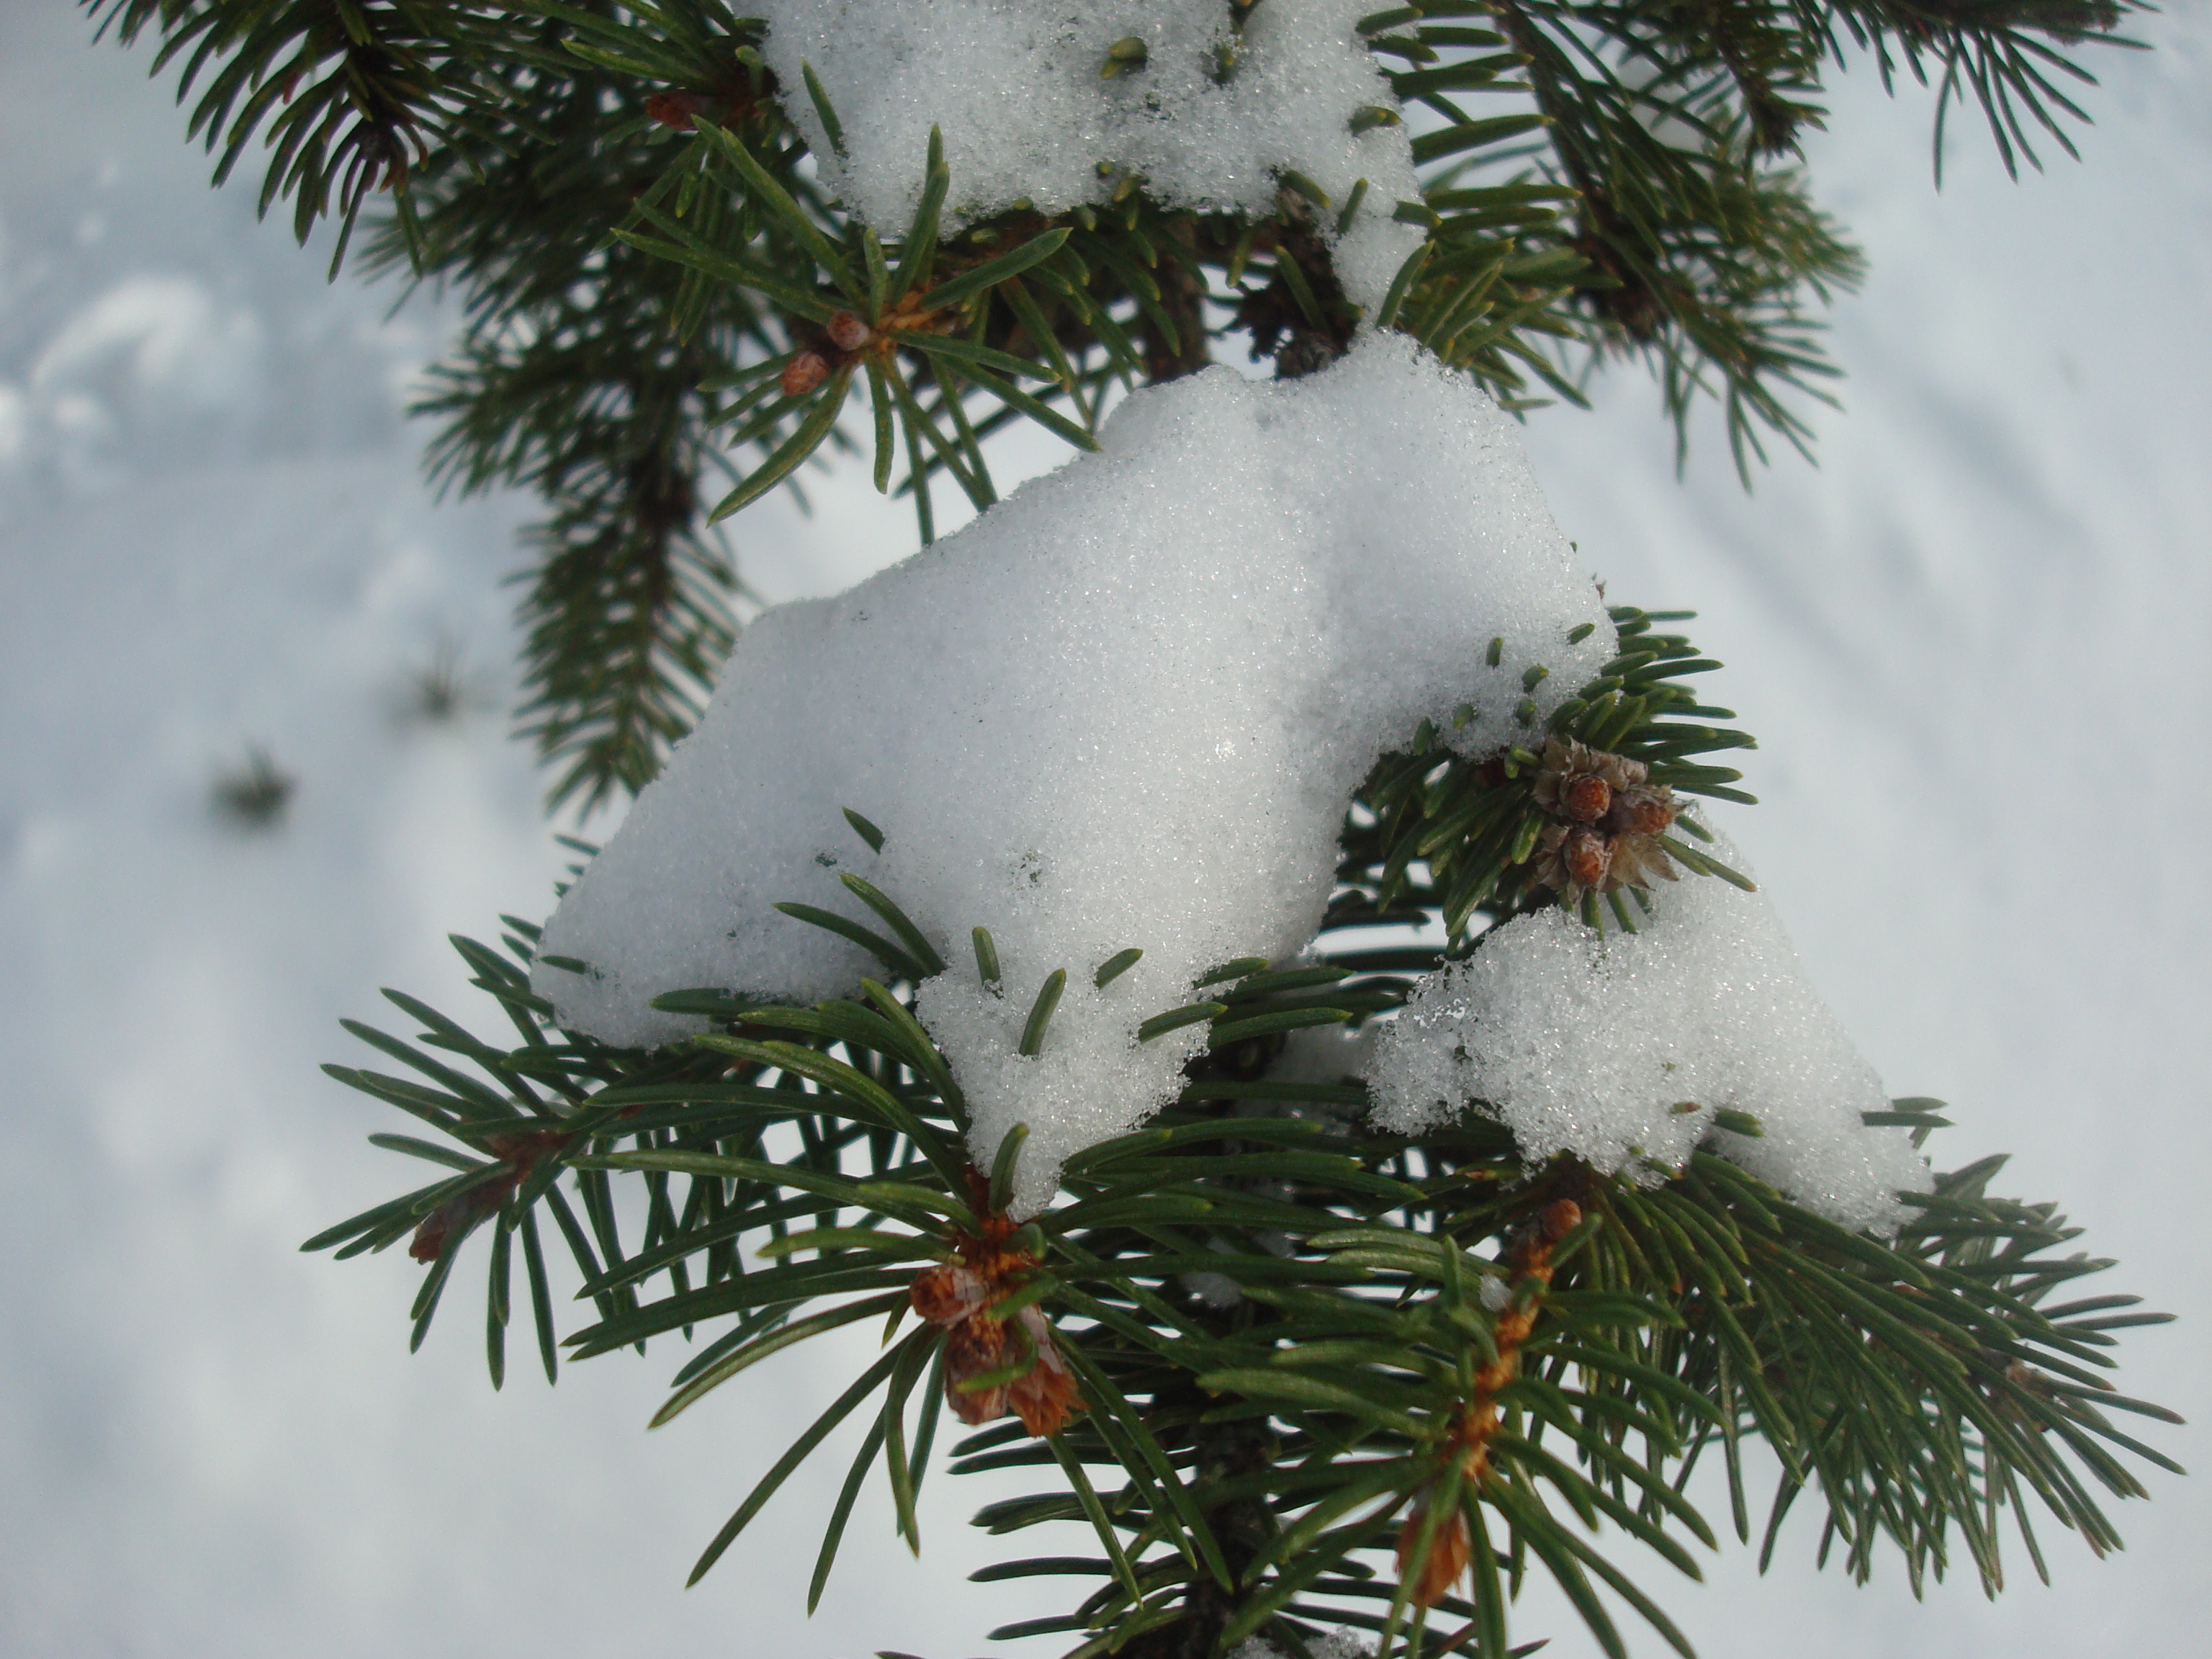 Snow covered fir tree photo